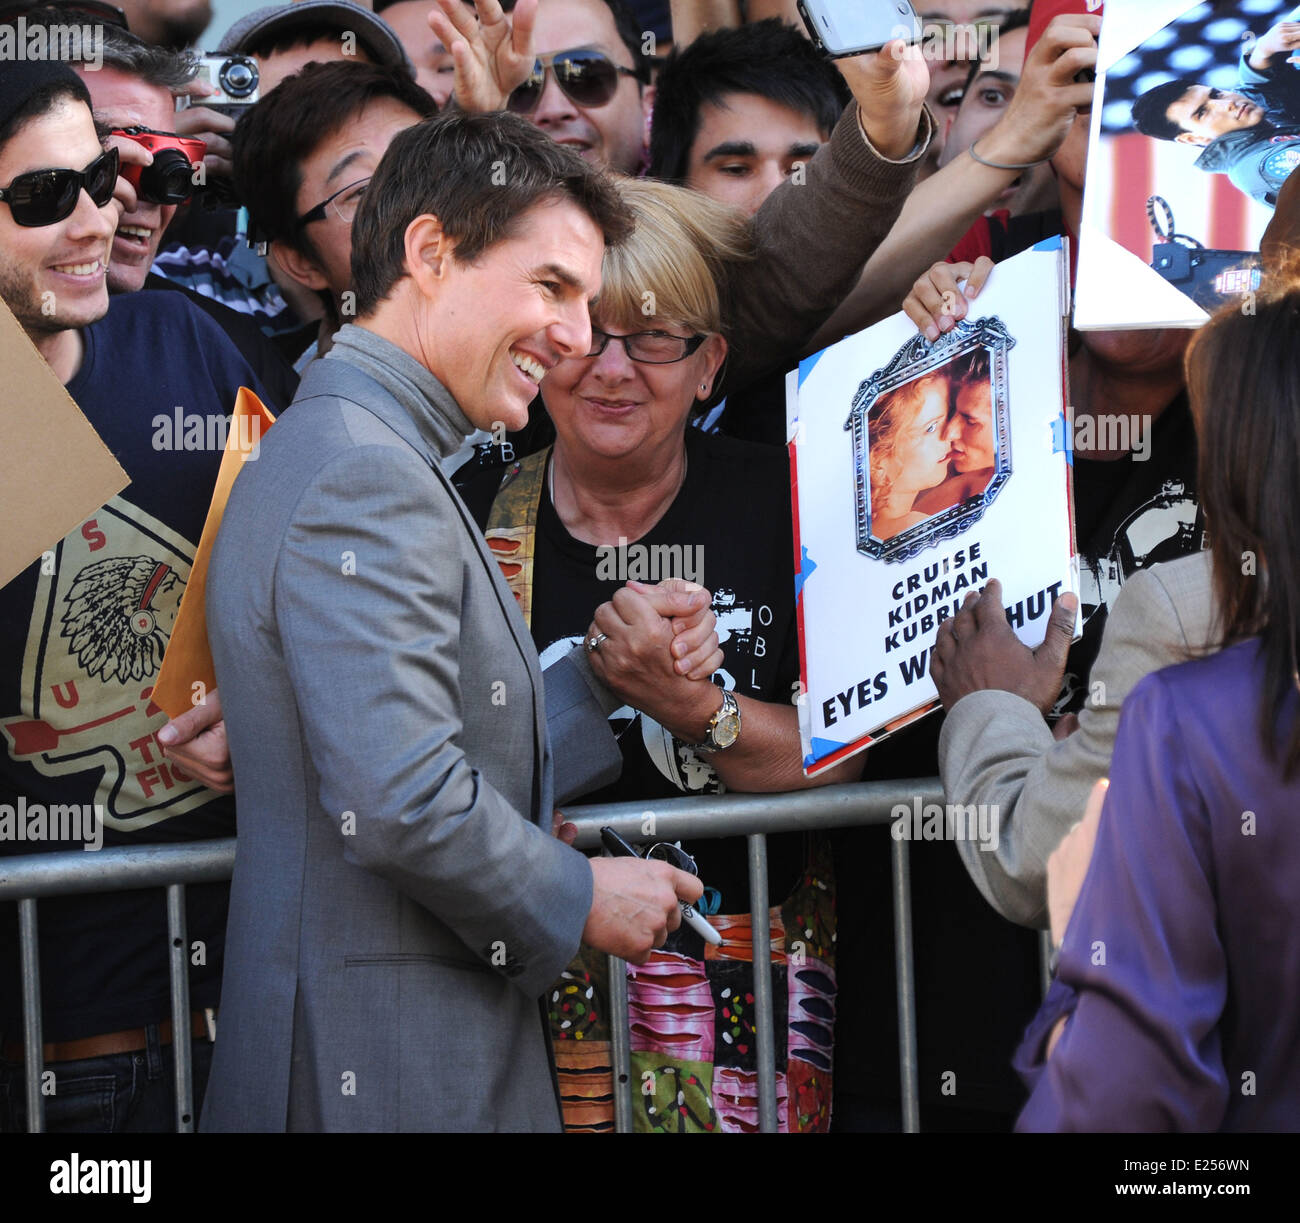 The Los Angeles premiere of 'Oblivion' at The Dolby Theatre  Where: Hollywood, California, United States - Stock Image